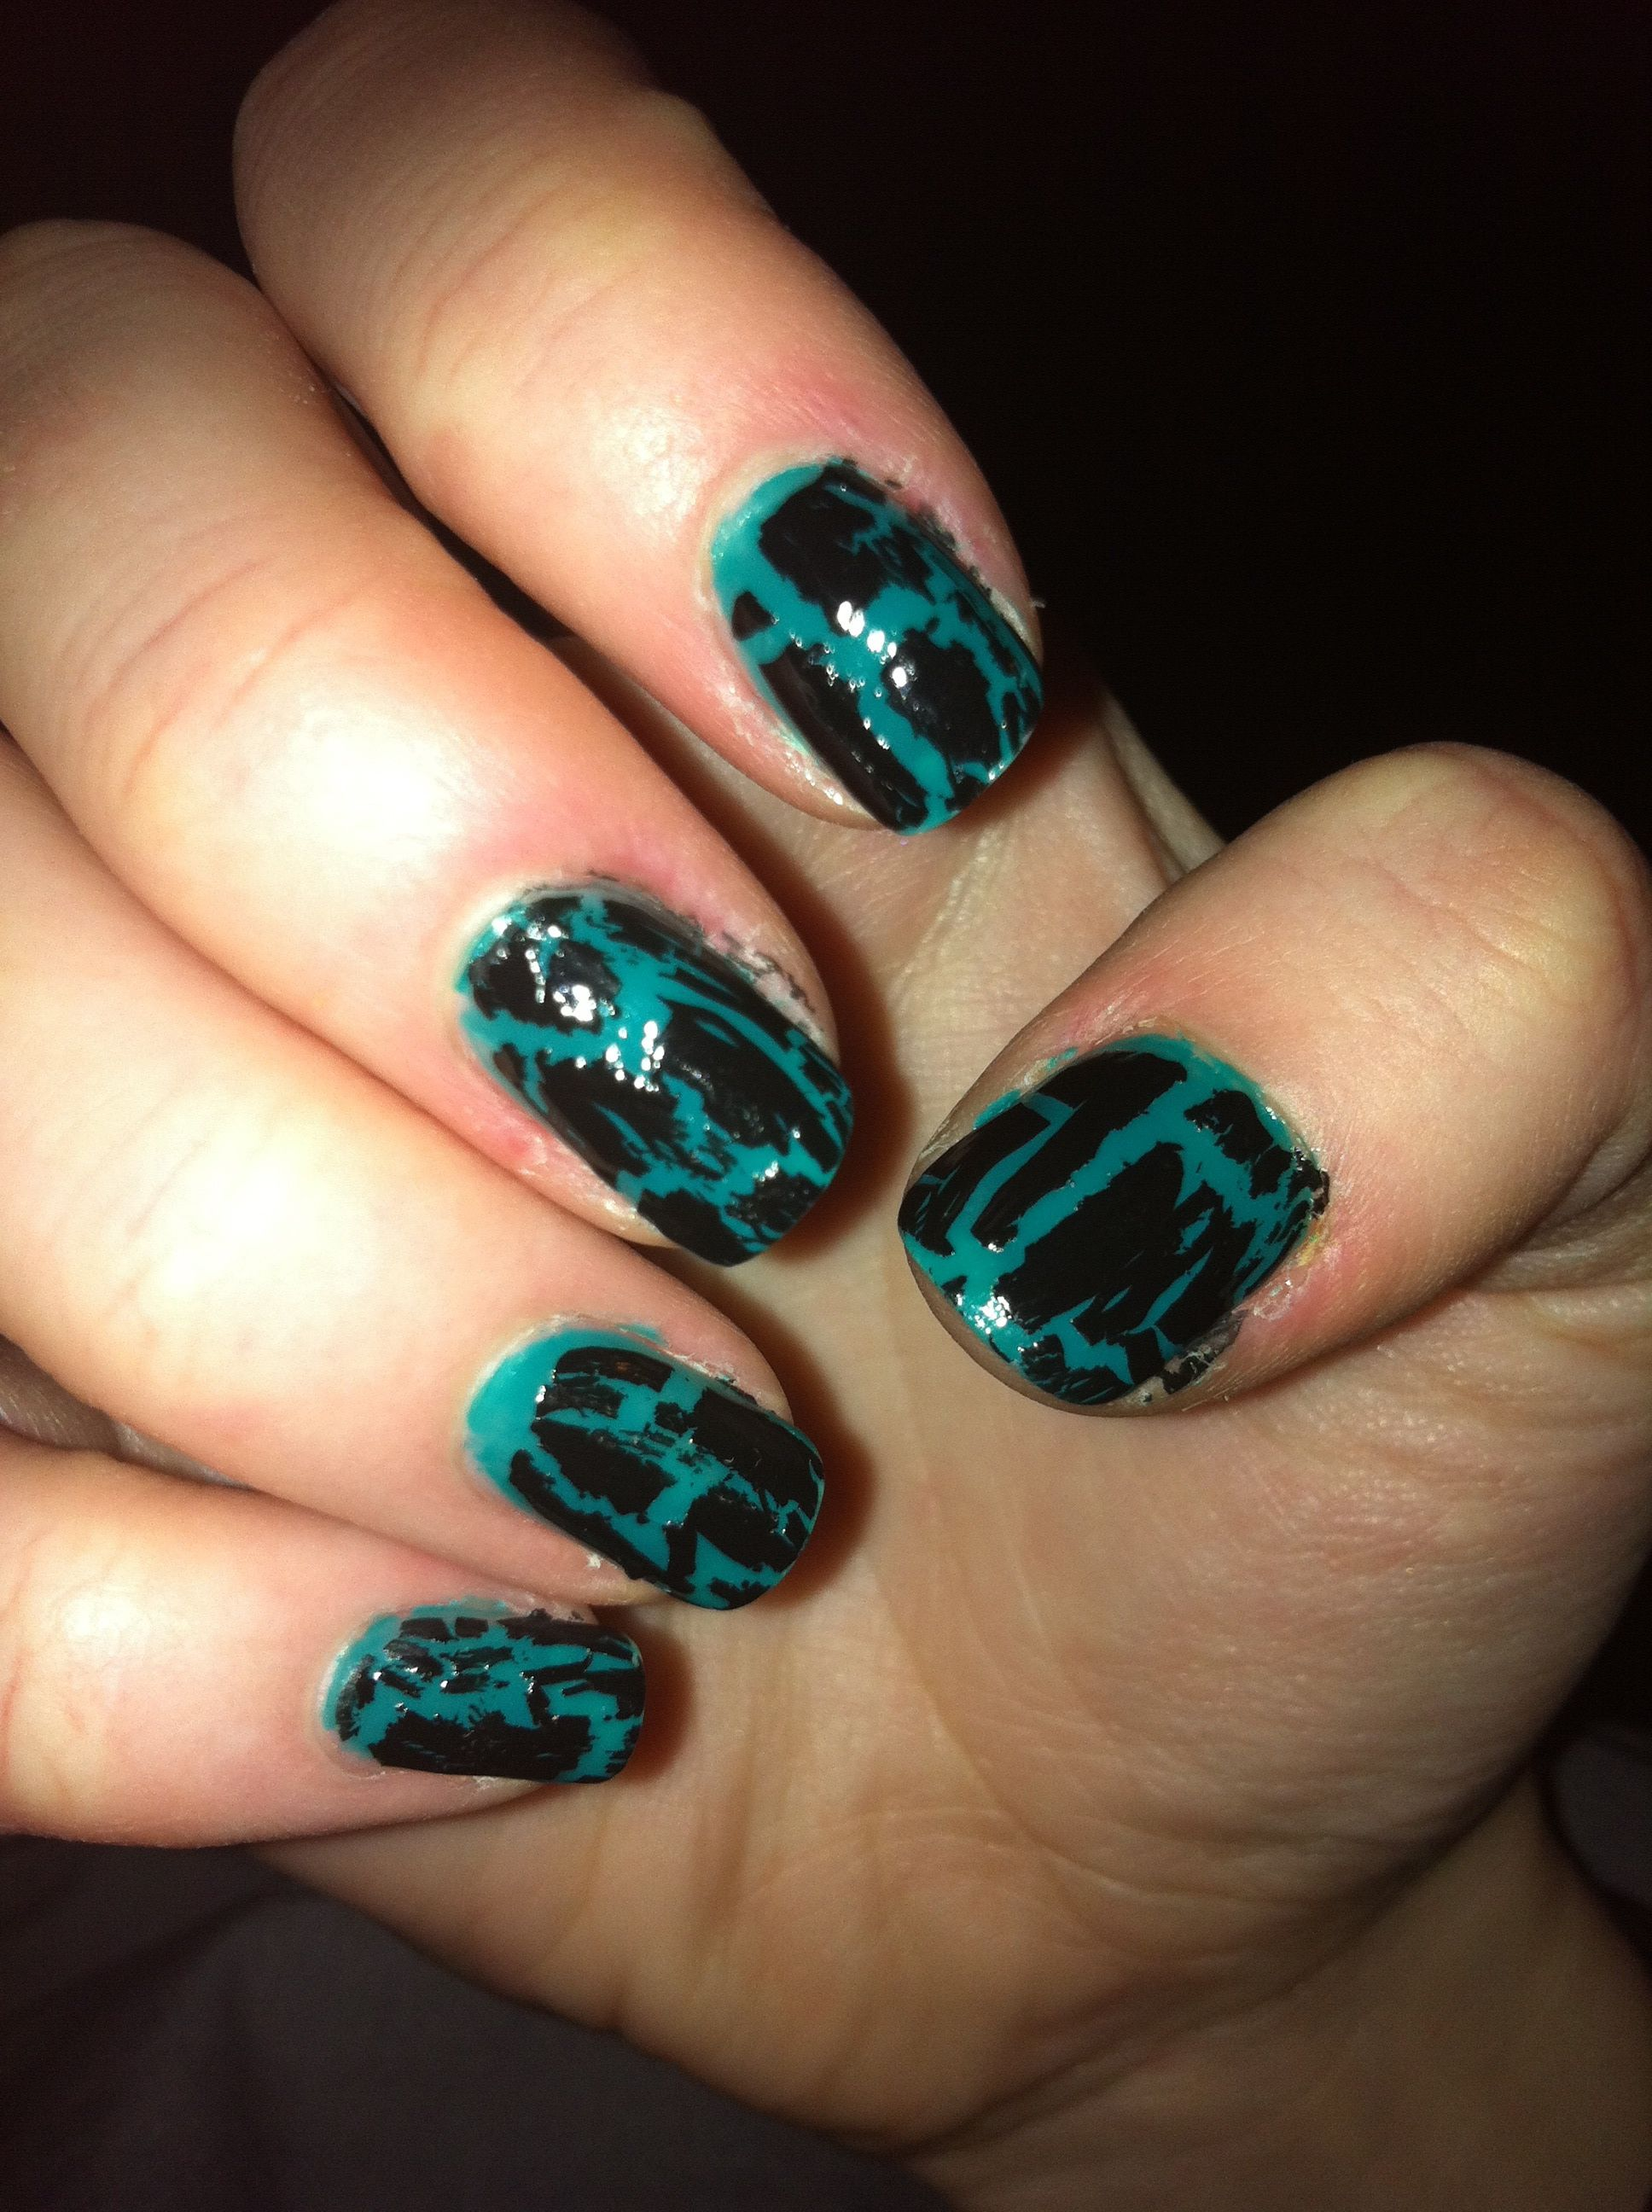 crackle - black and teal nails